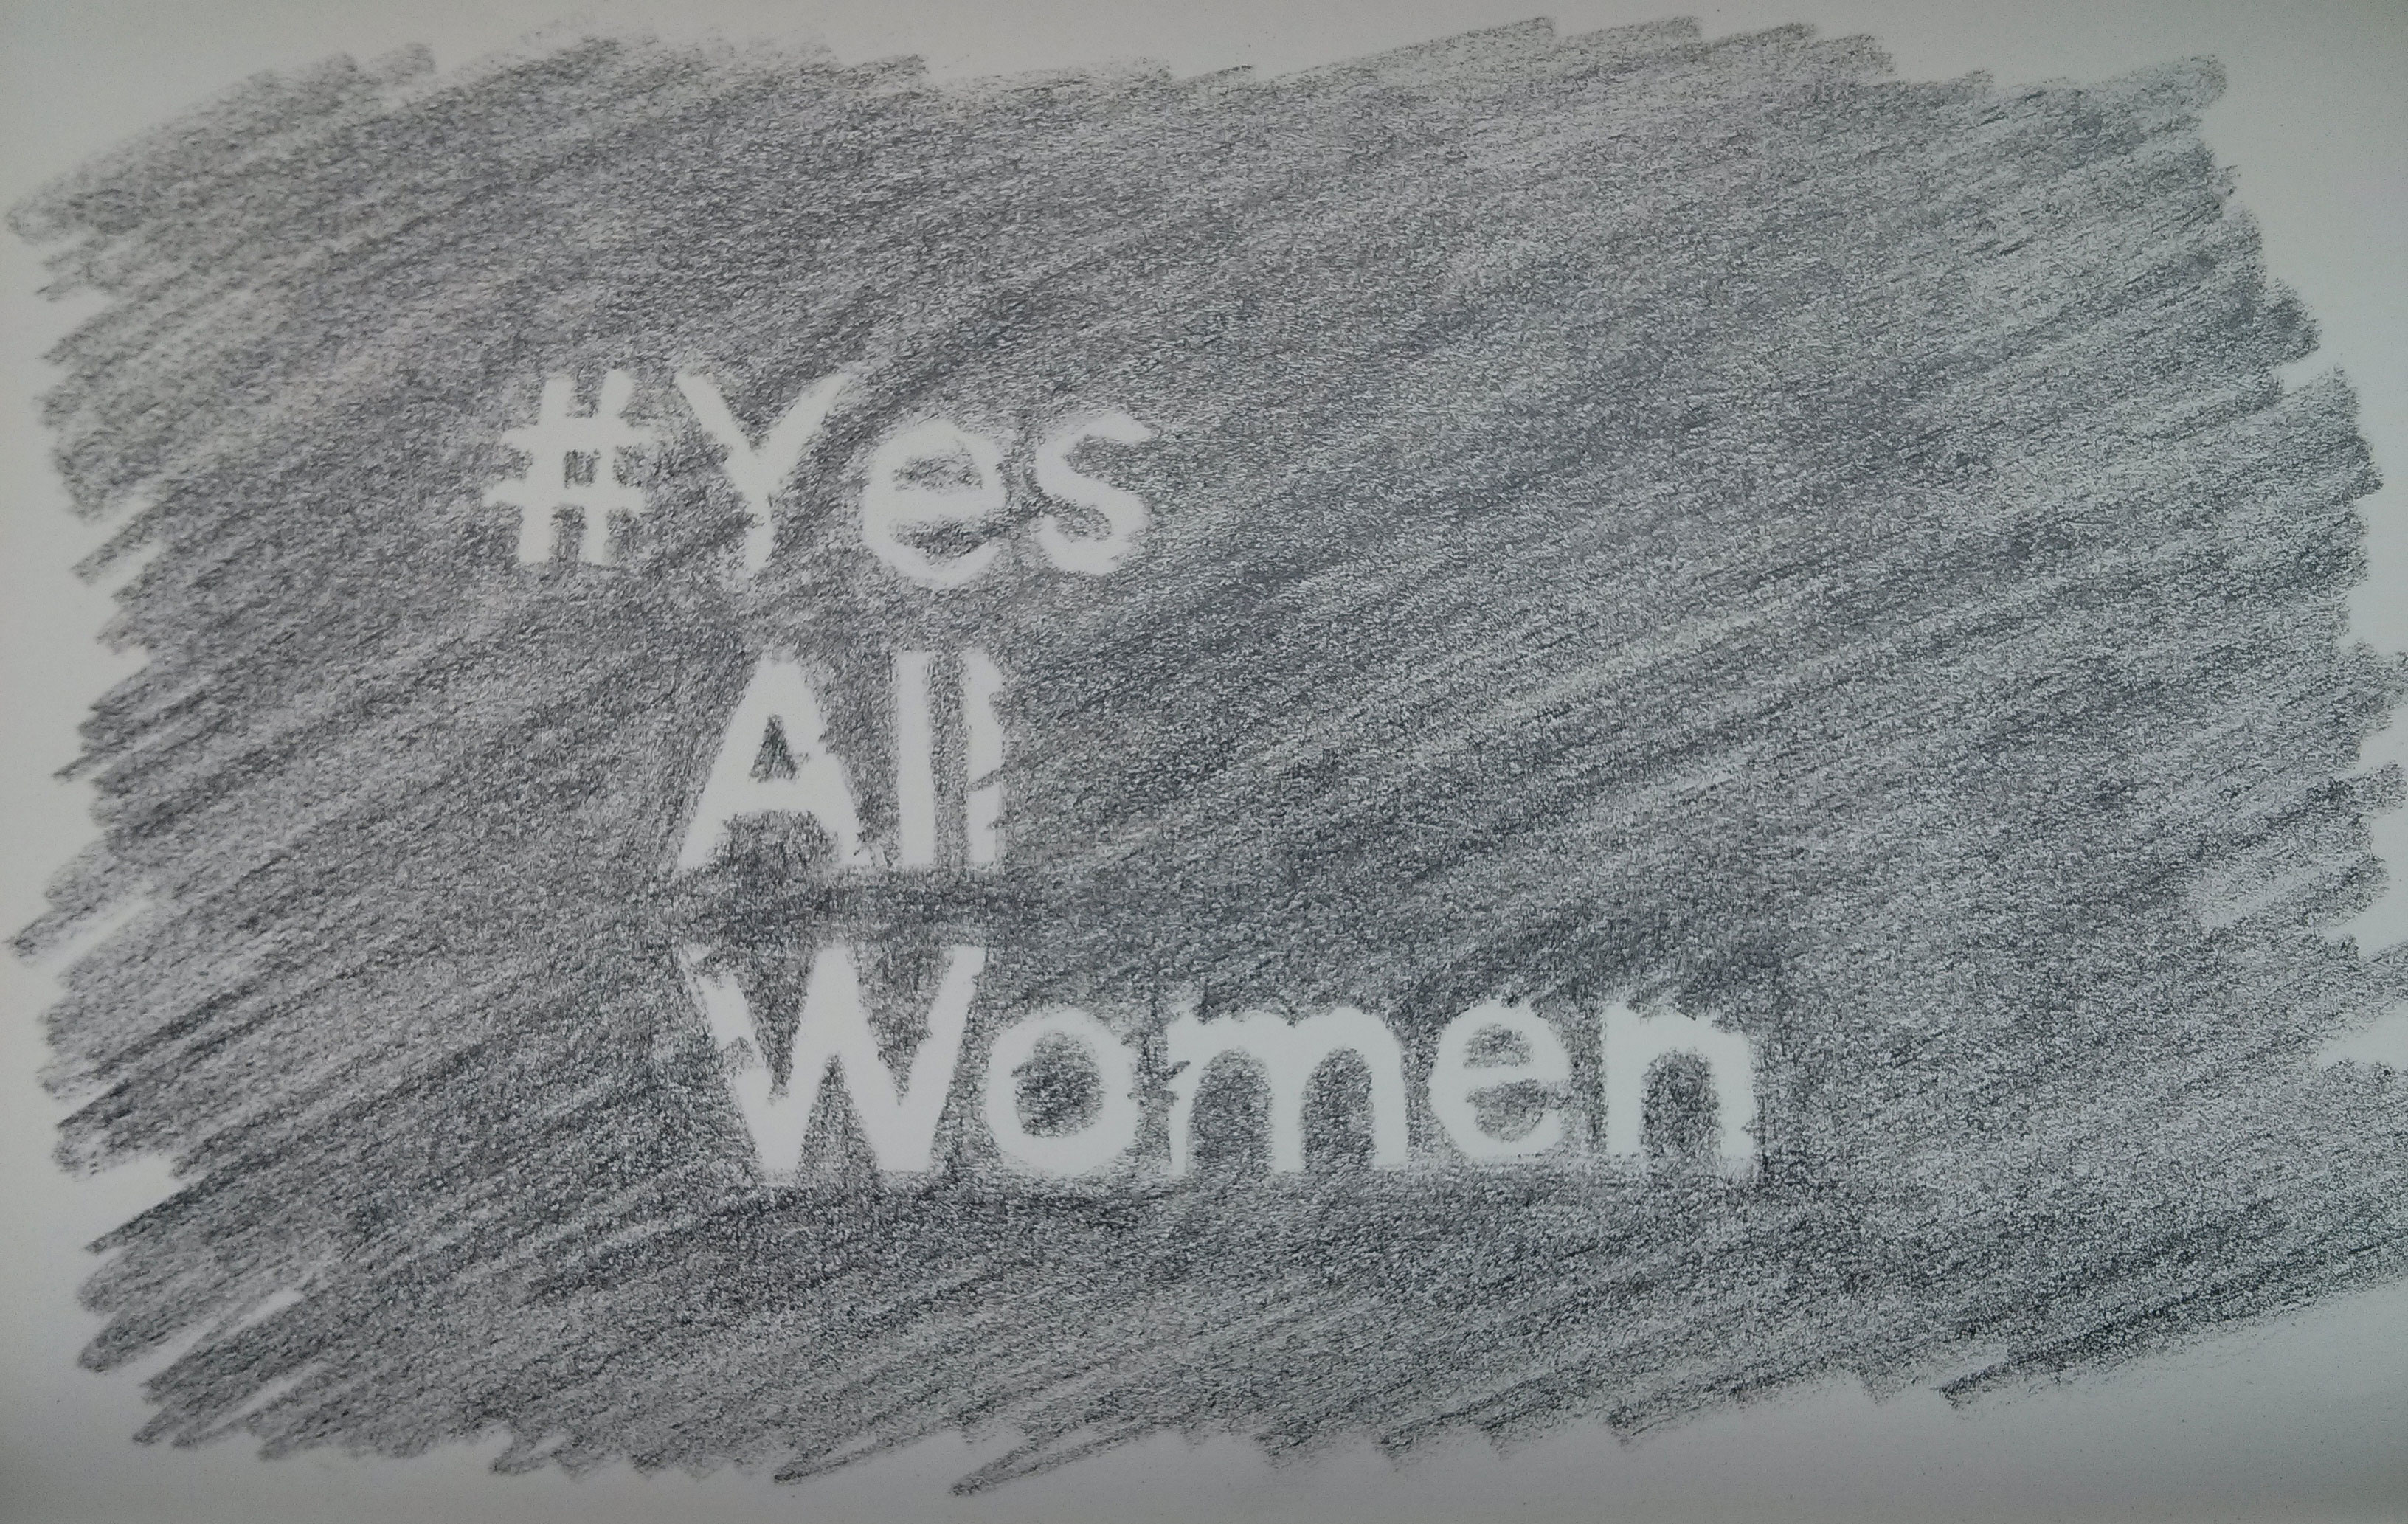 Go to #YesAllWomen: This Is Not About You